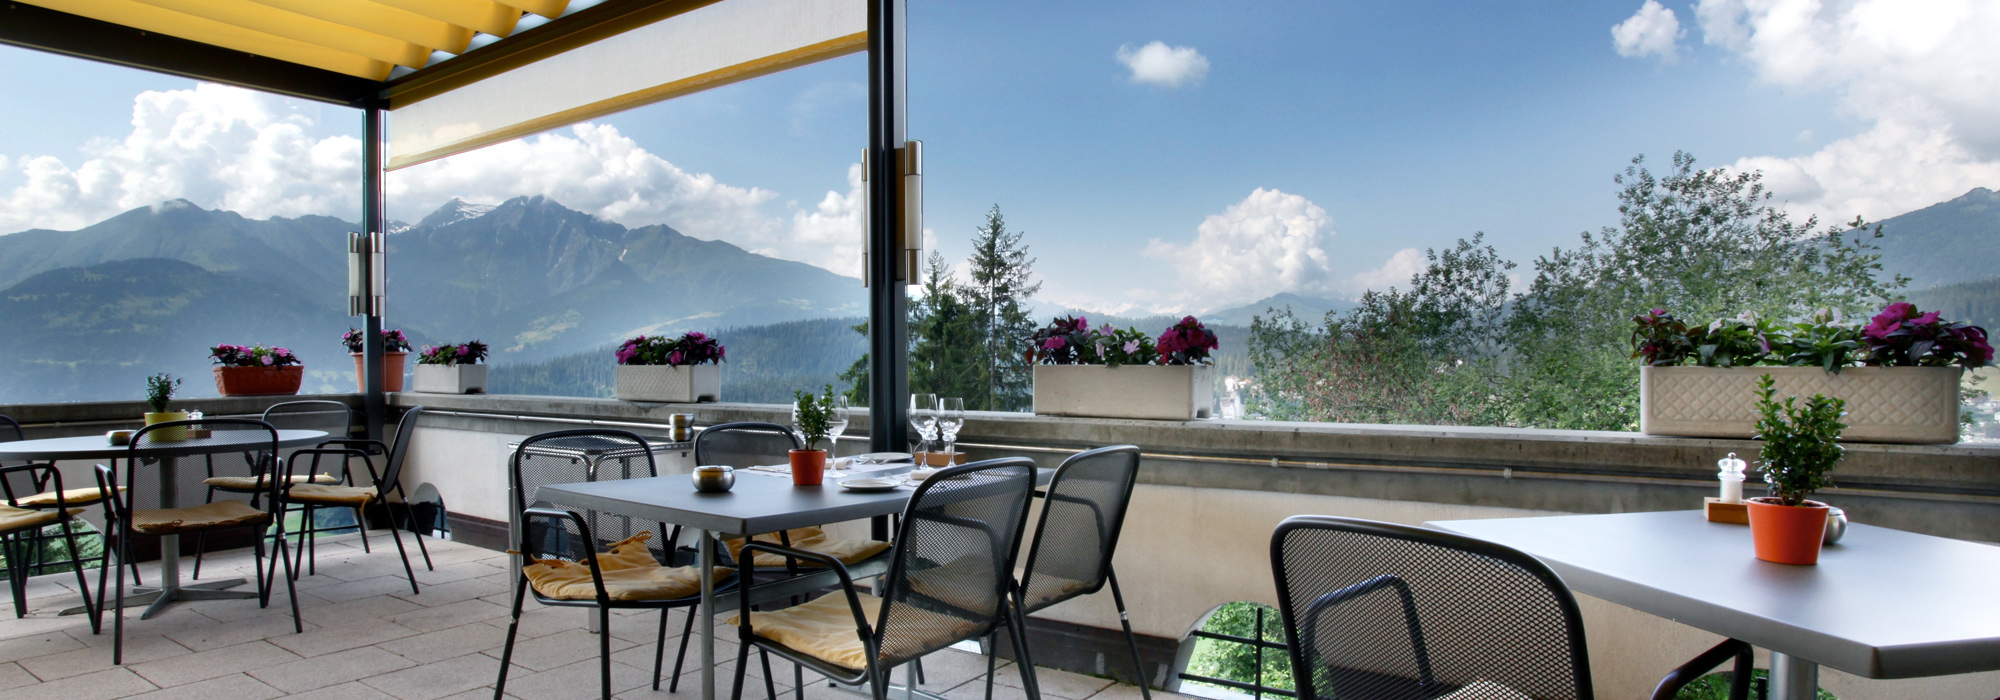 Sun Terrace Restaurant Fidazerhof in Flims / Laax